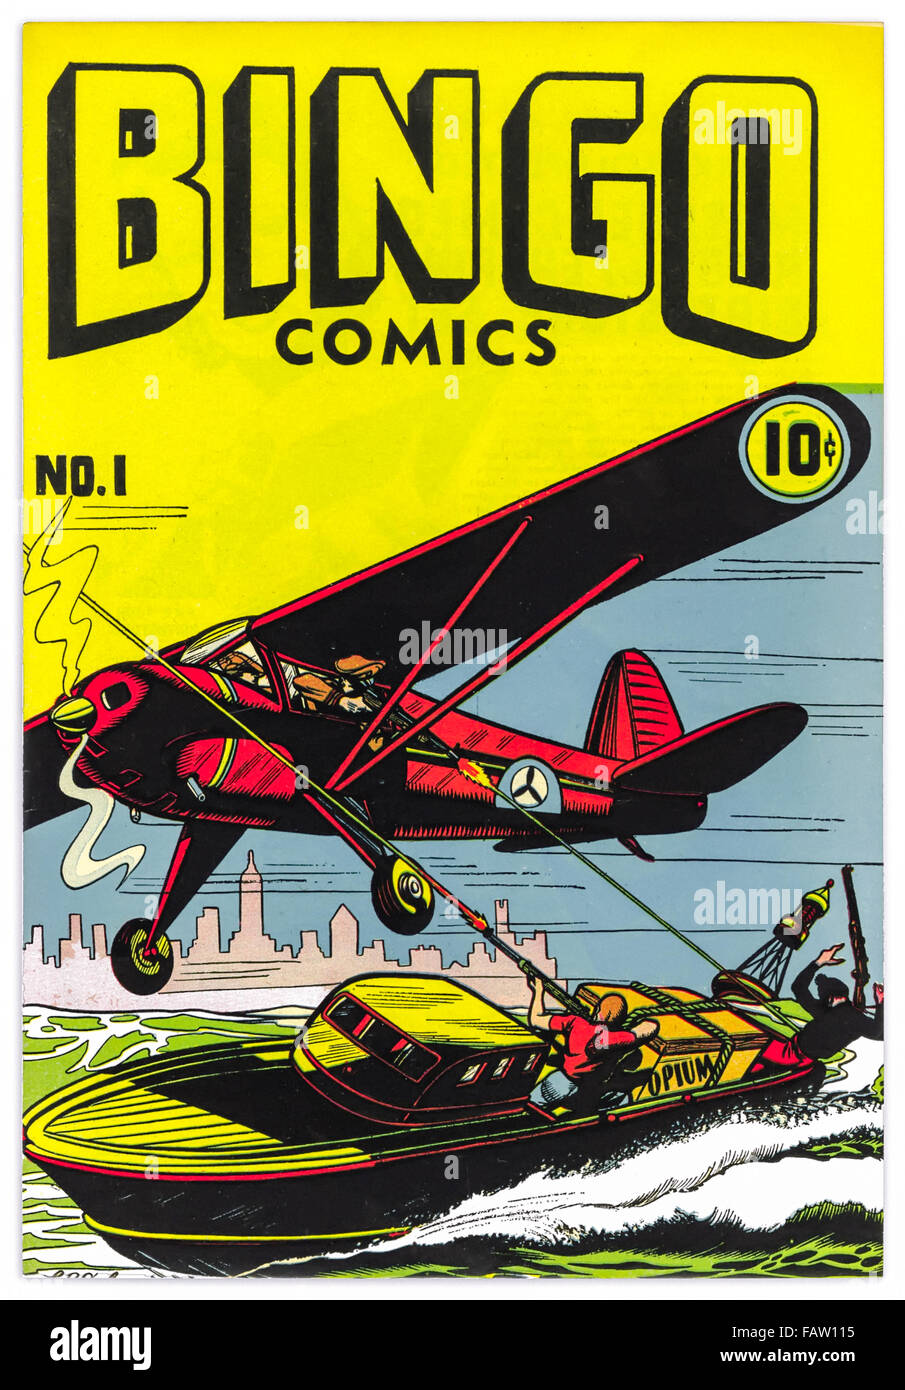 'Bingo Comics' Issue 1 published in 1945 featuring Opium runners in a fast boat under fire from law enforcement. - Stock Image